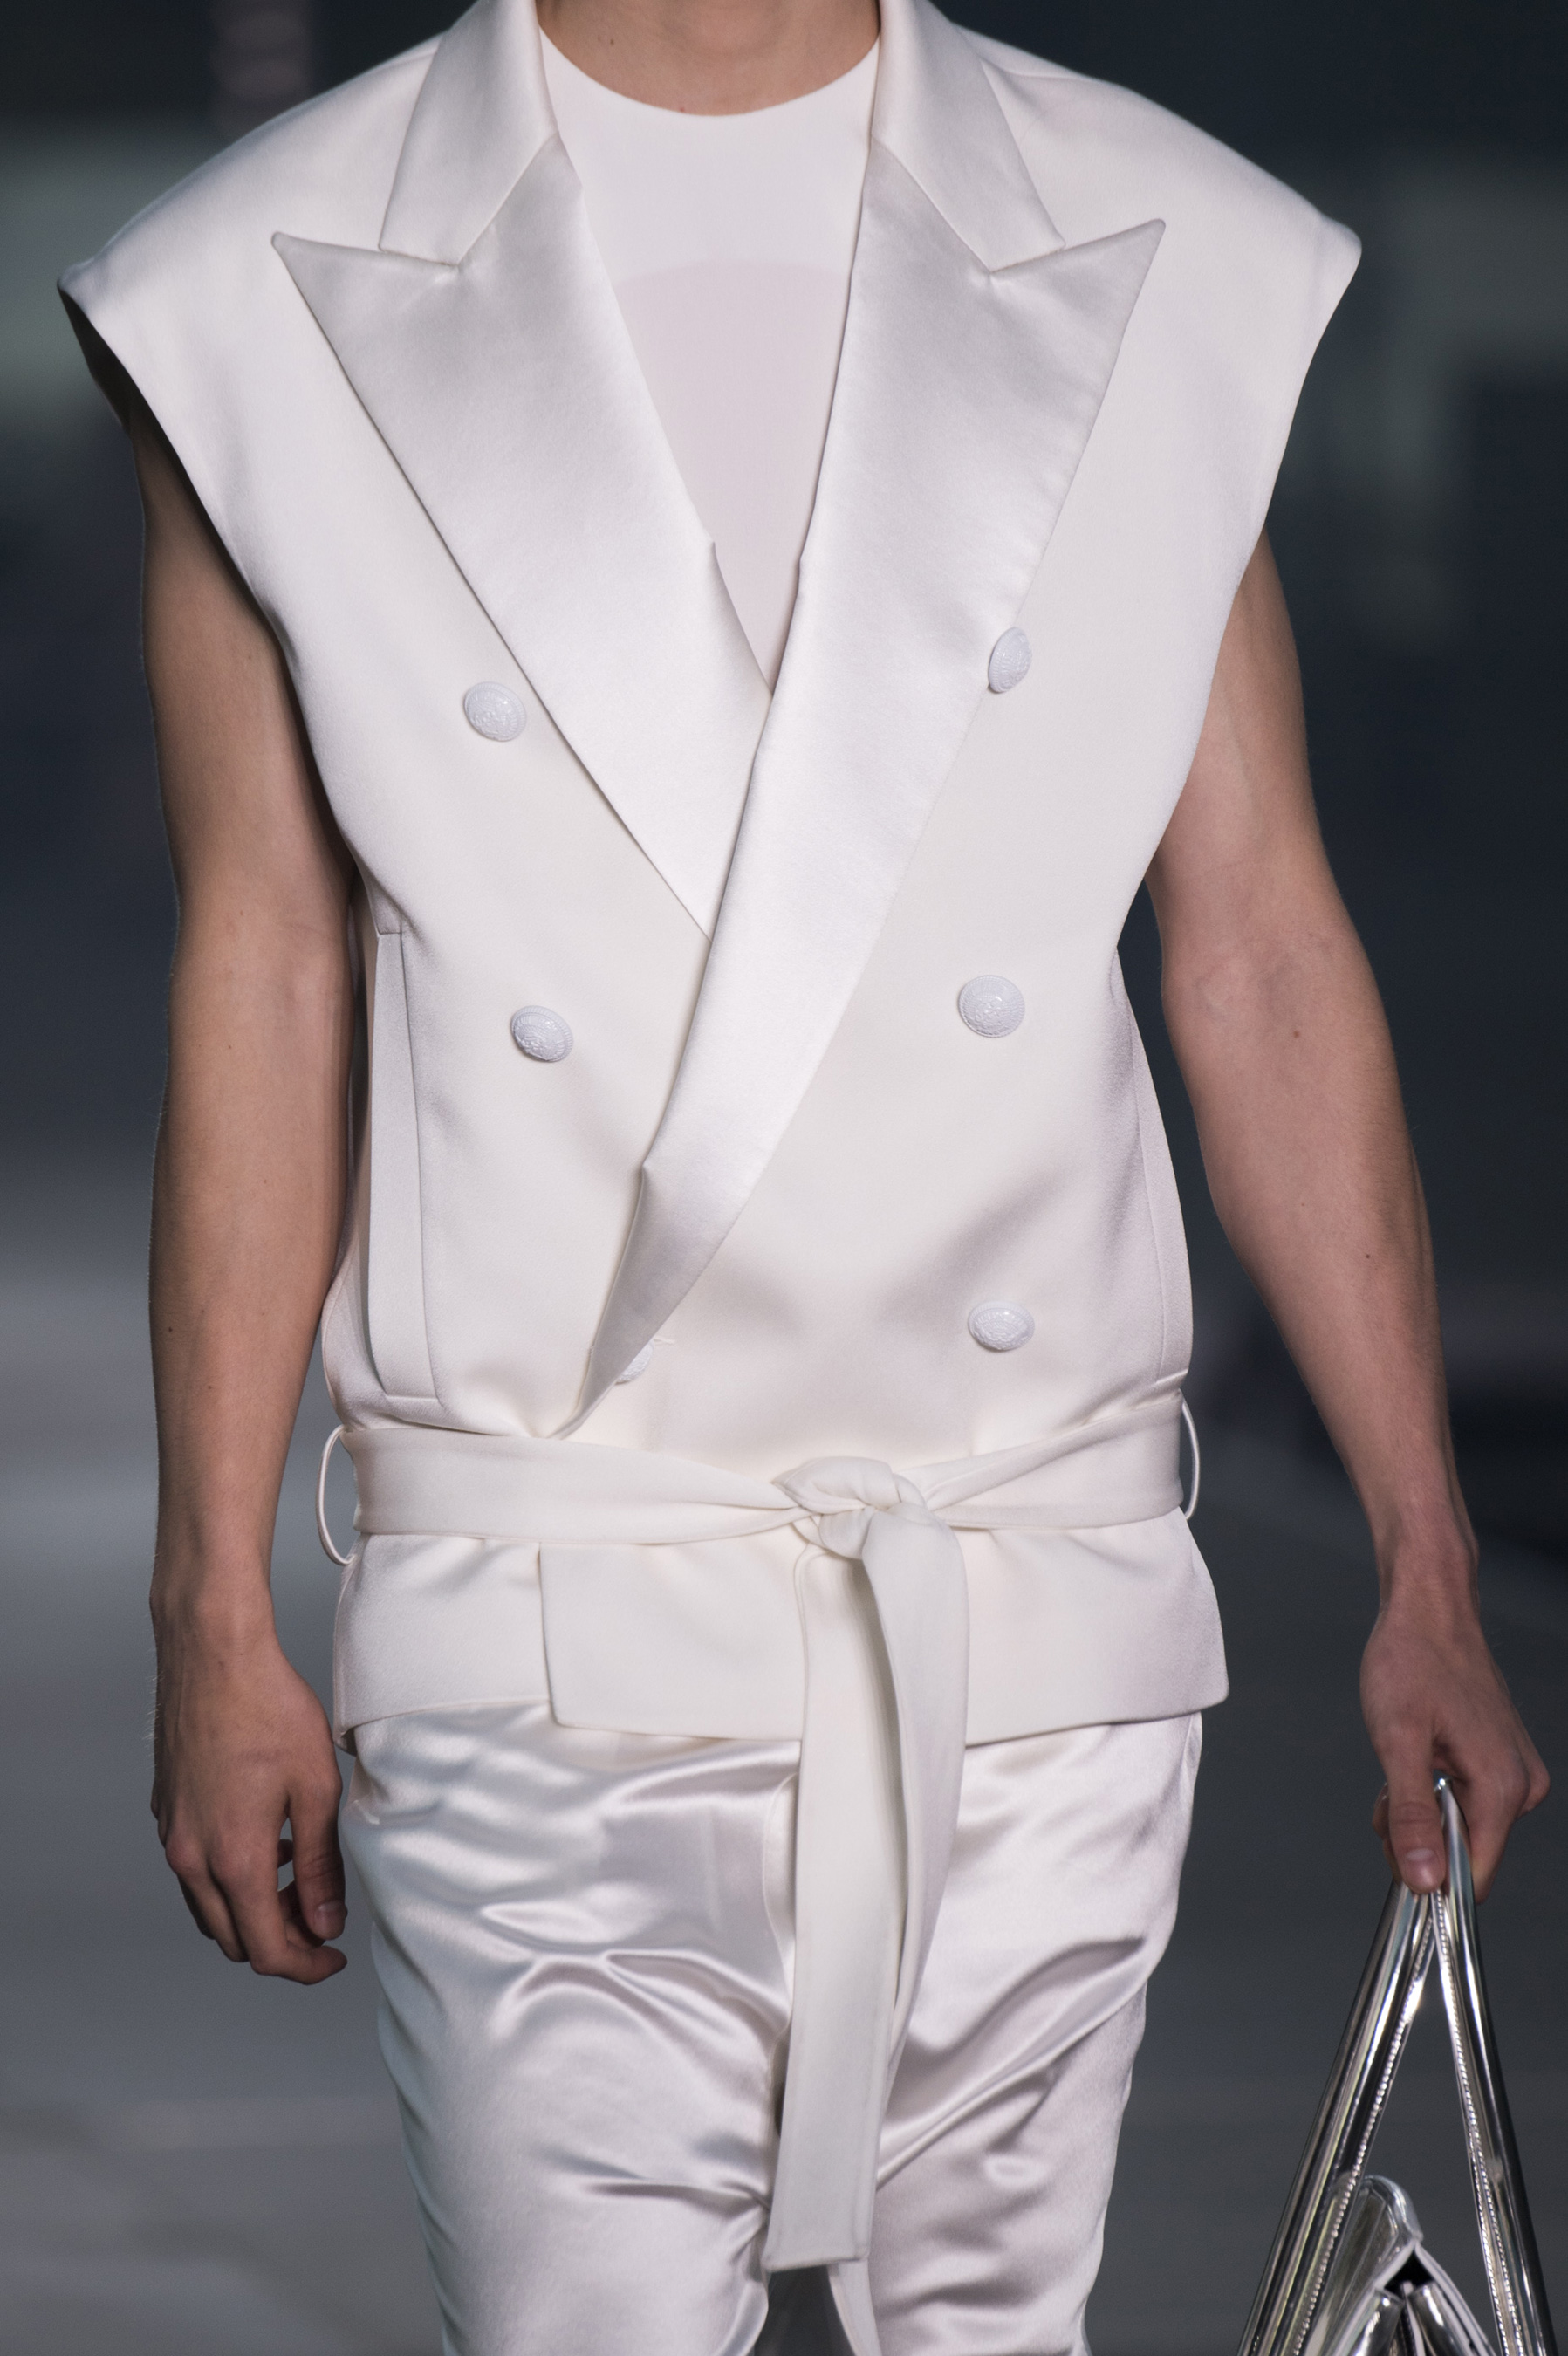 Balmain Spring 2020 Men's Fashion Show Details